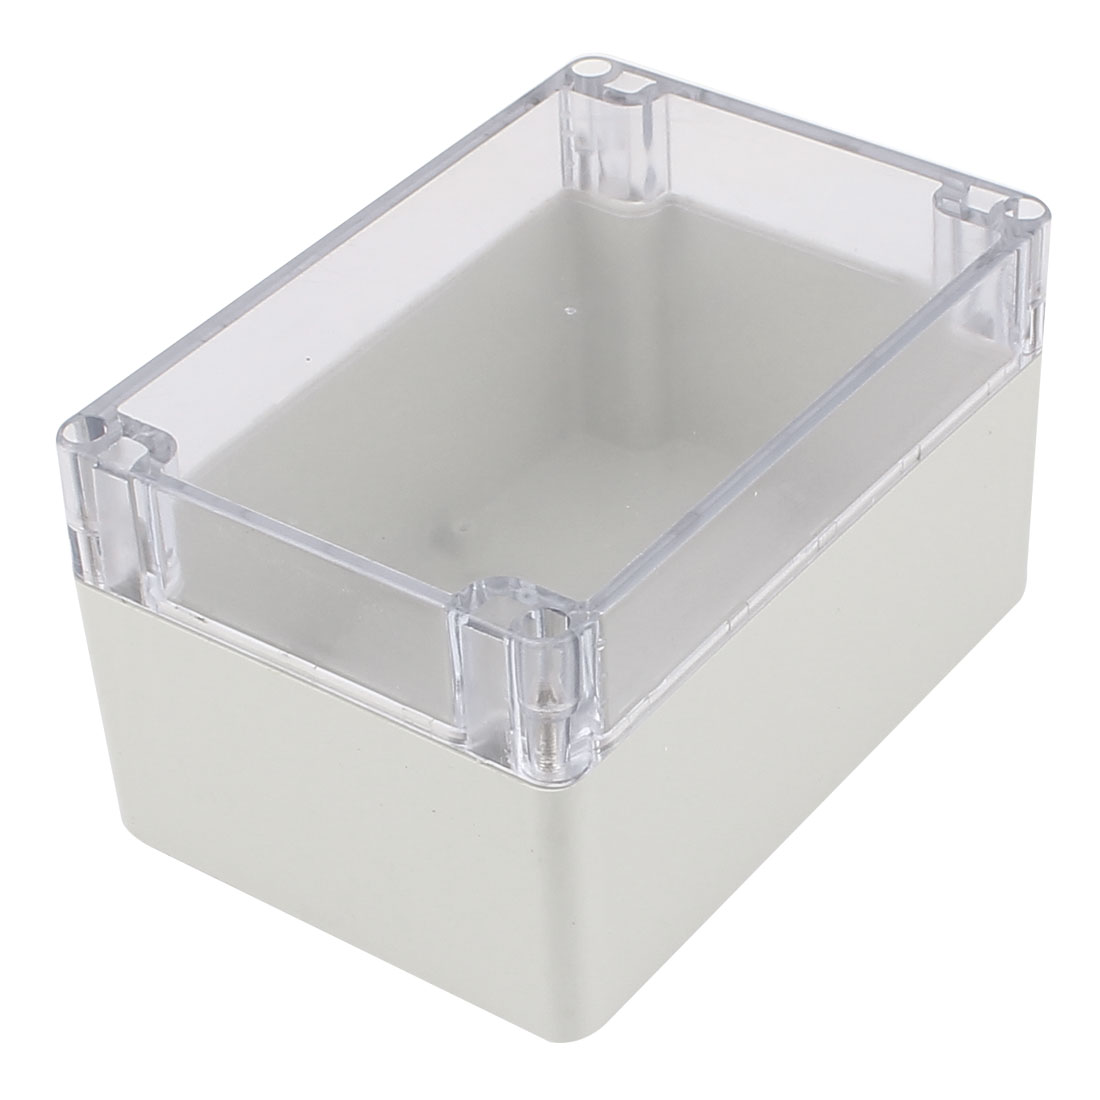 160mm x 110mm x 90mm Clear Cover Dustproof IP65 Enclosure Case DIY Junction Box